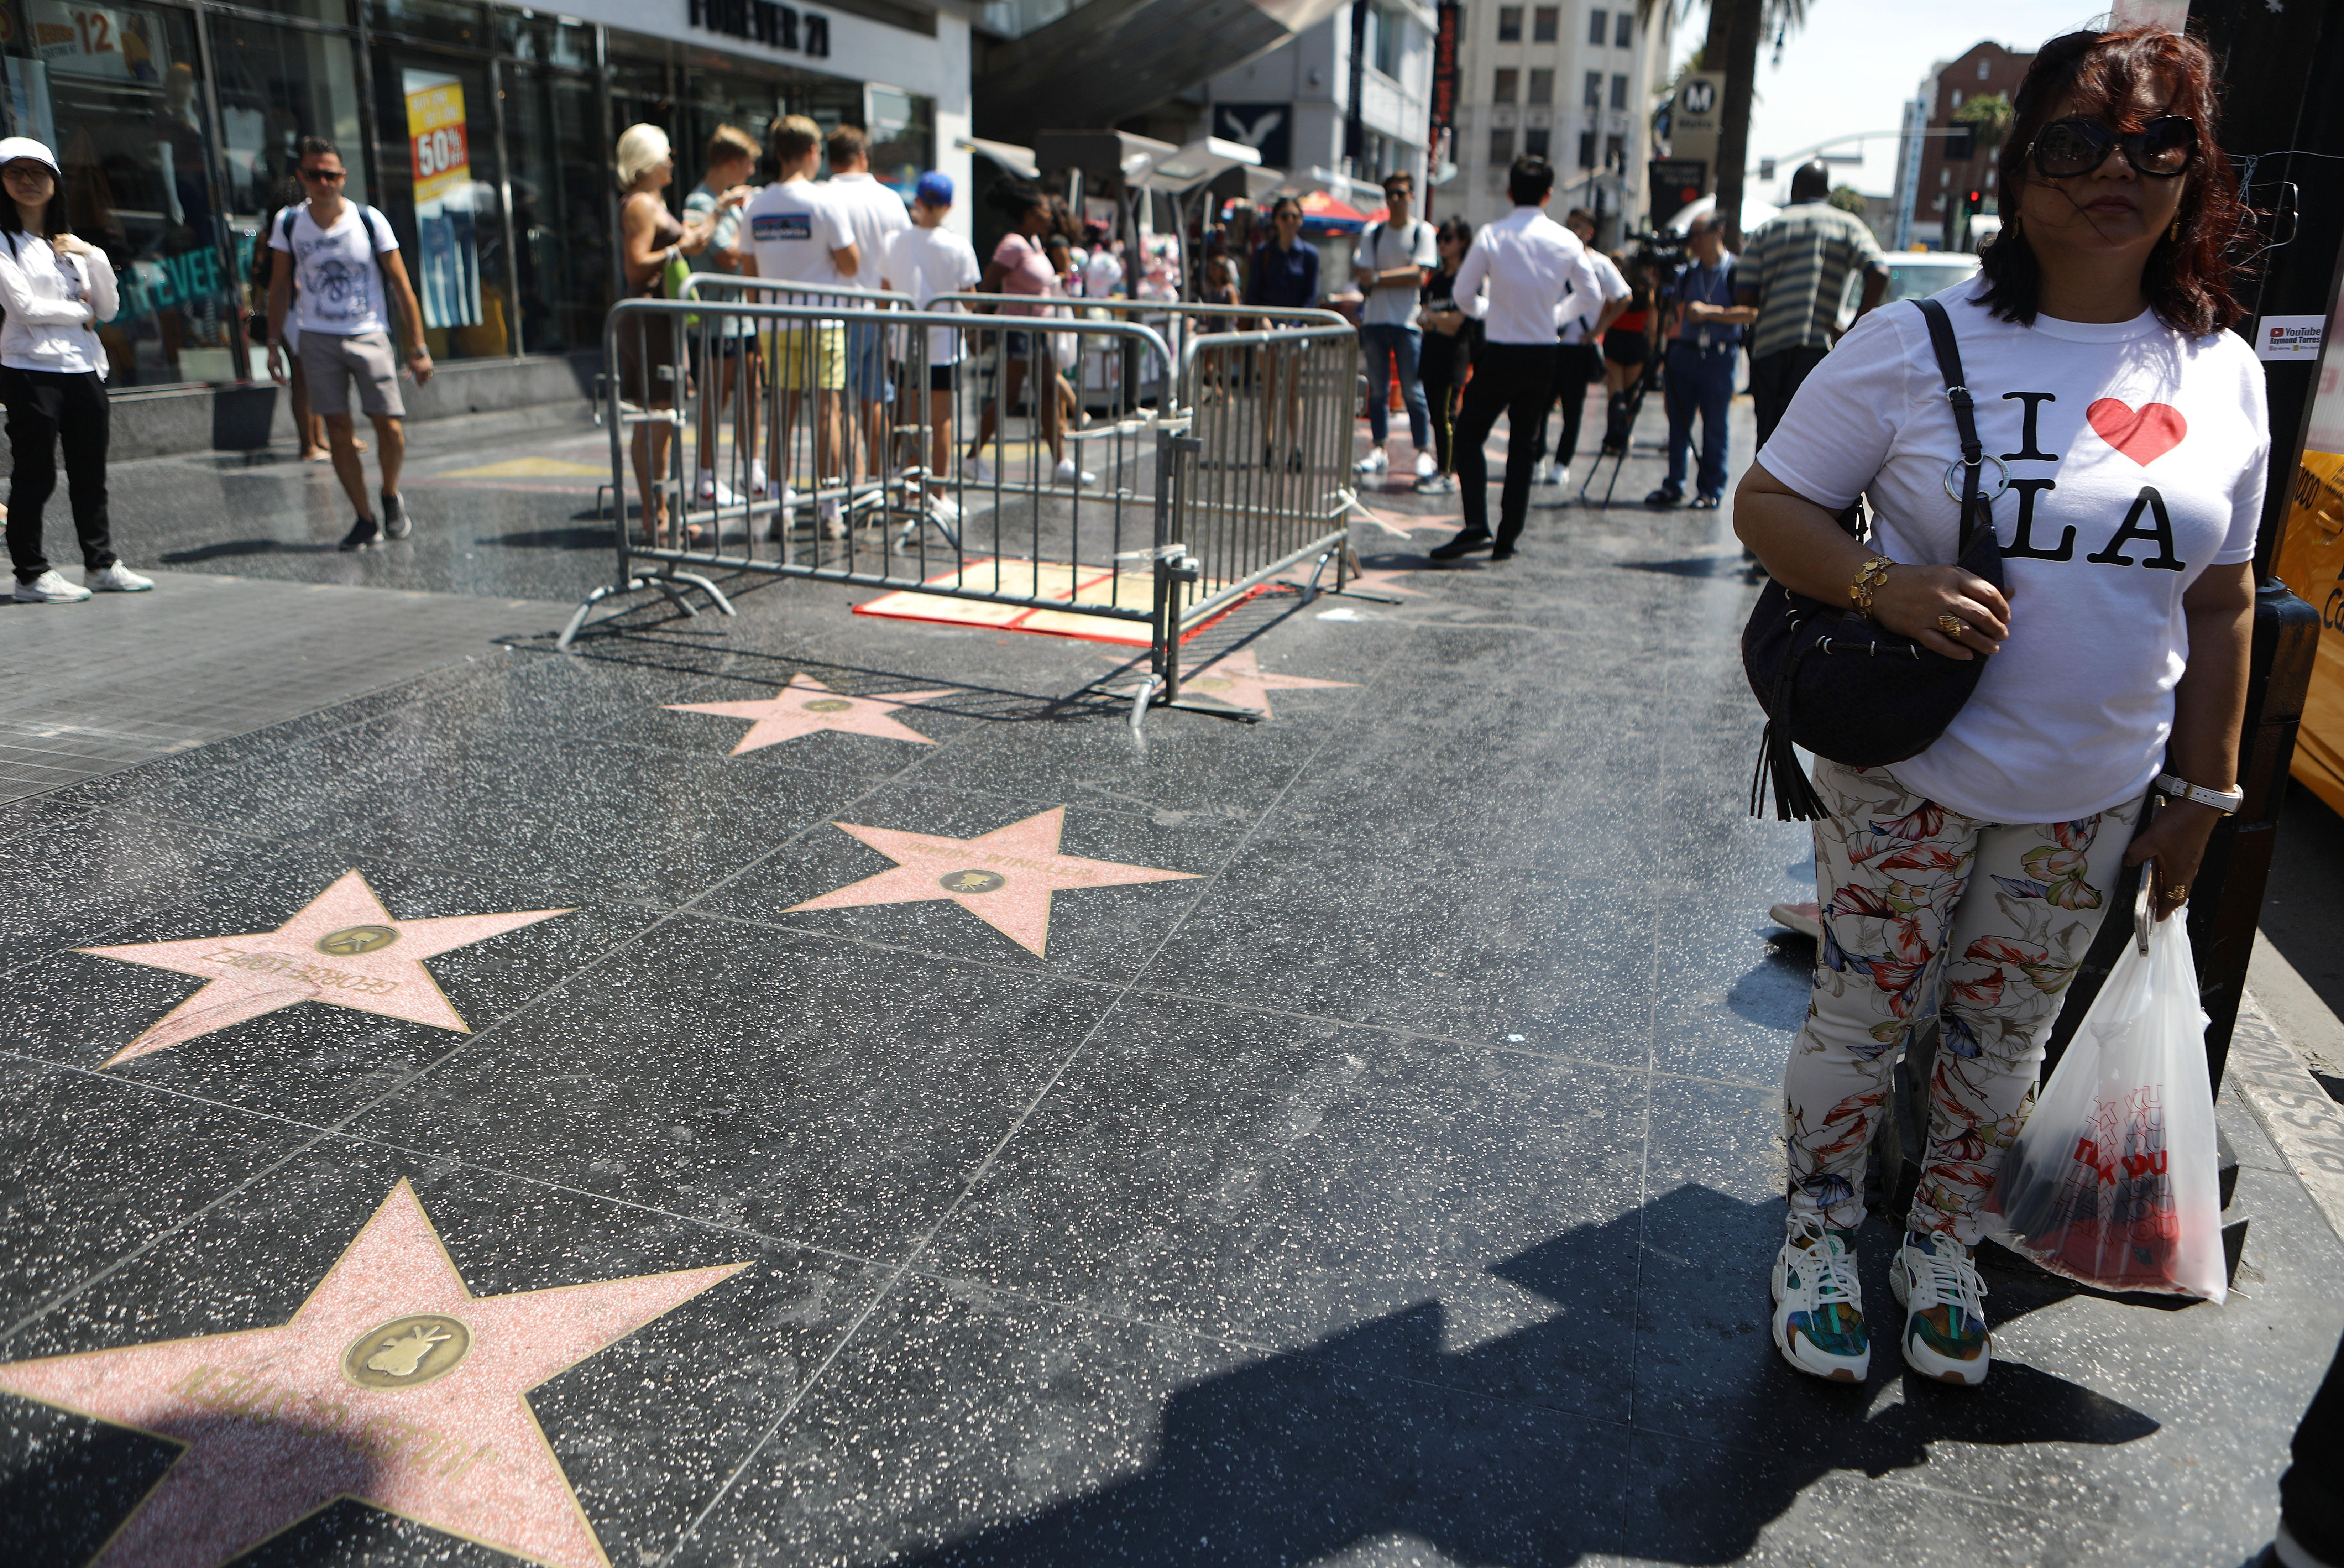 A woman wearing an I Heart LA shirt stands near a barricade surrounding the location of the vandalized Hollywood star of President Donald Trump.